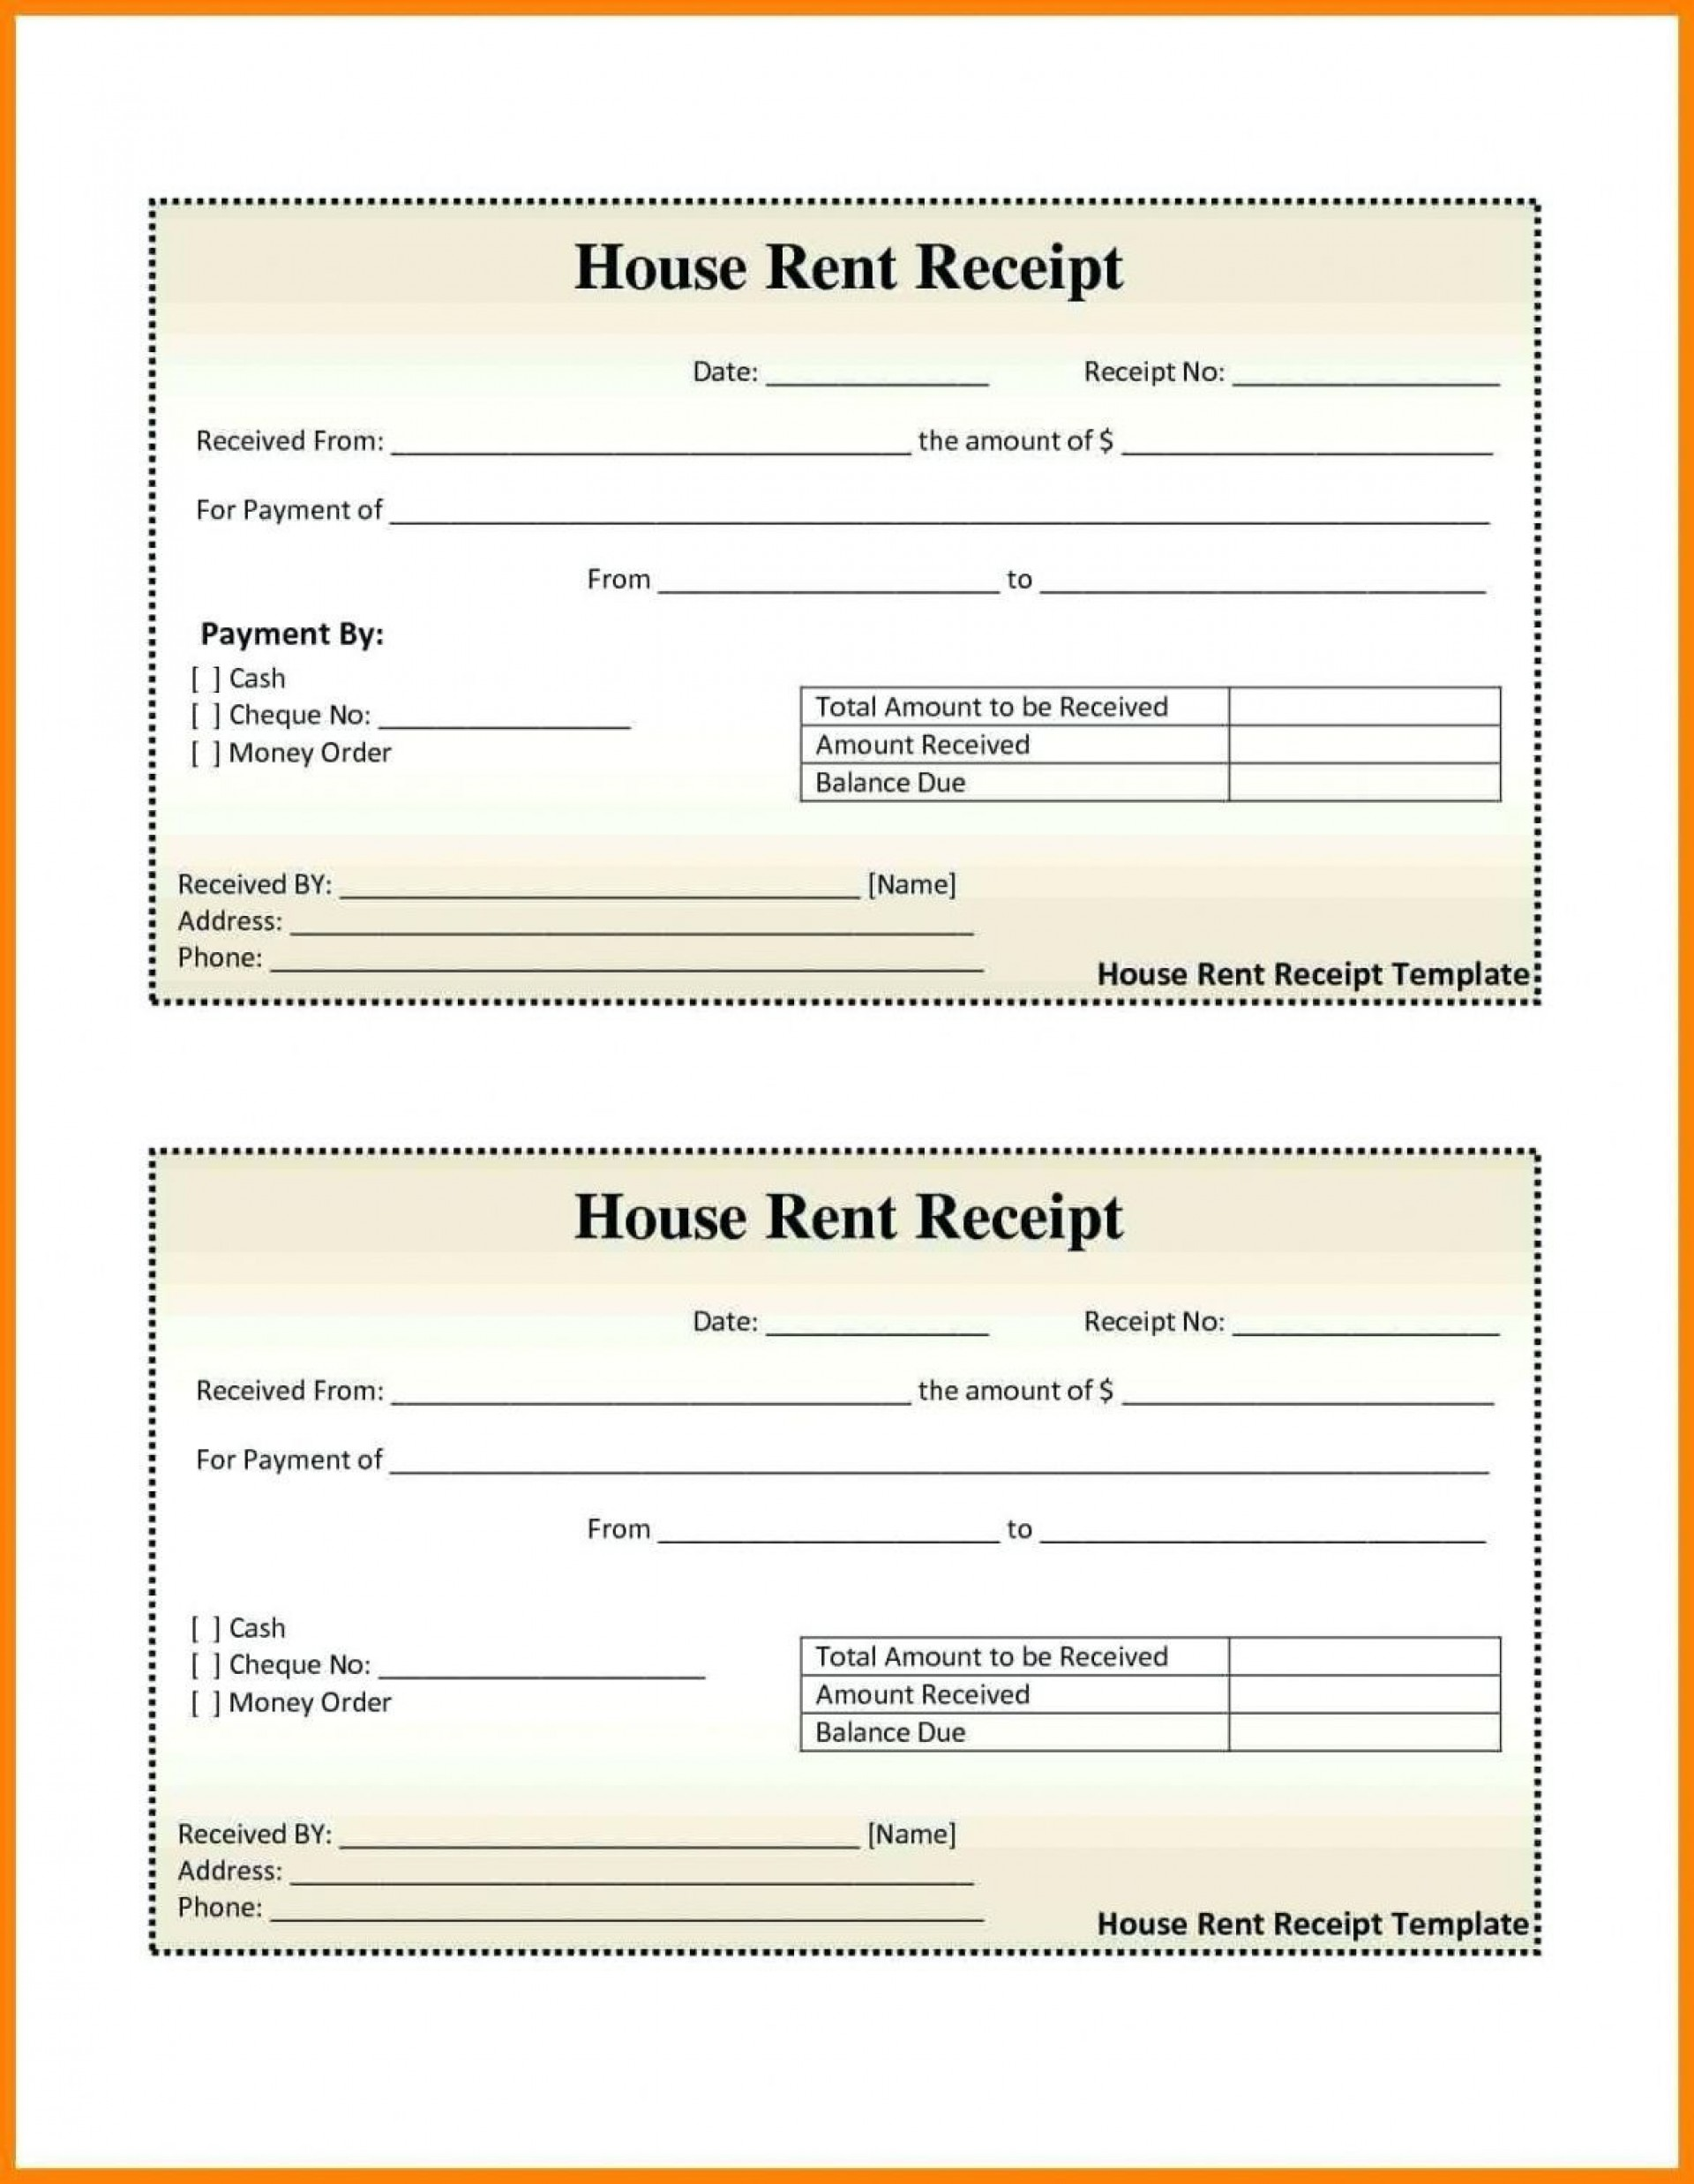 000 Excellent House Rent Receipt Sample Doc Photo  Template Word Document Free Download Format For Income Tax1920